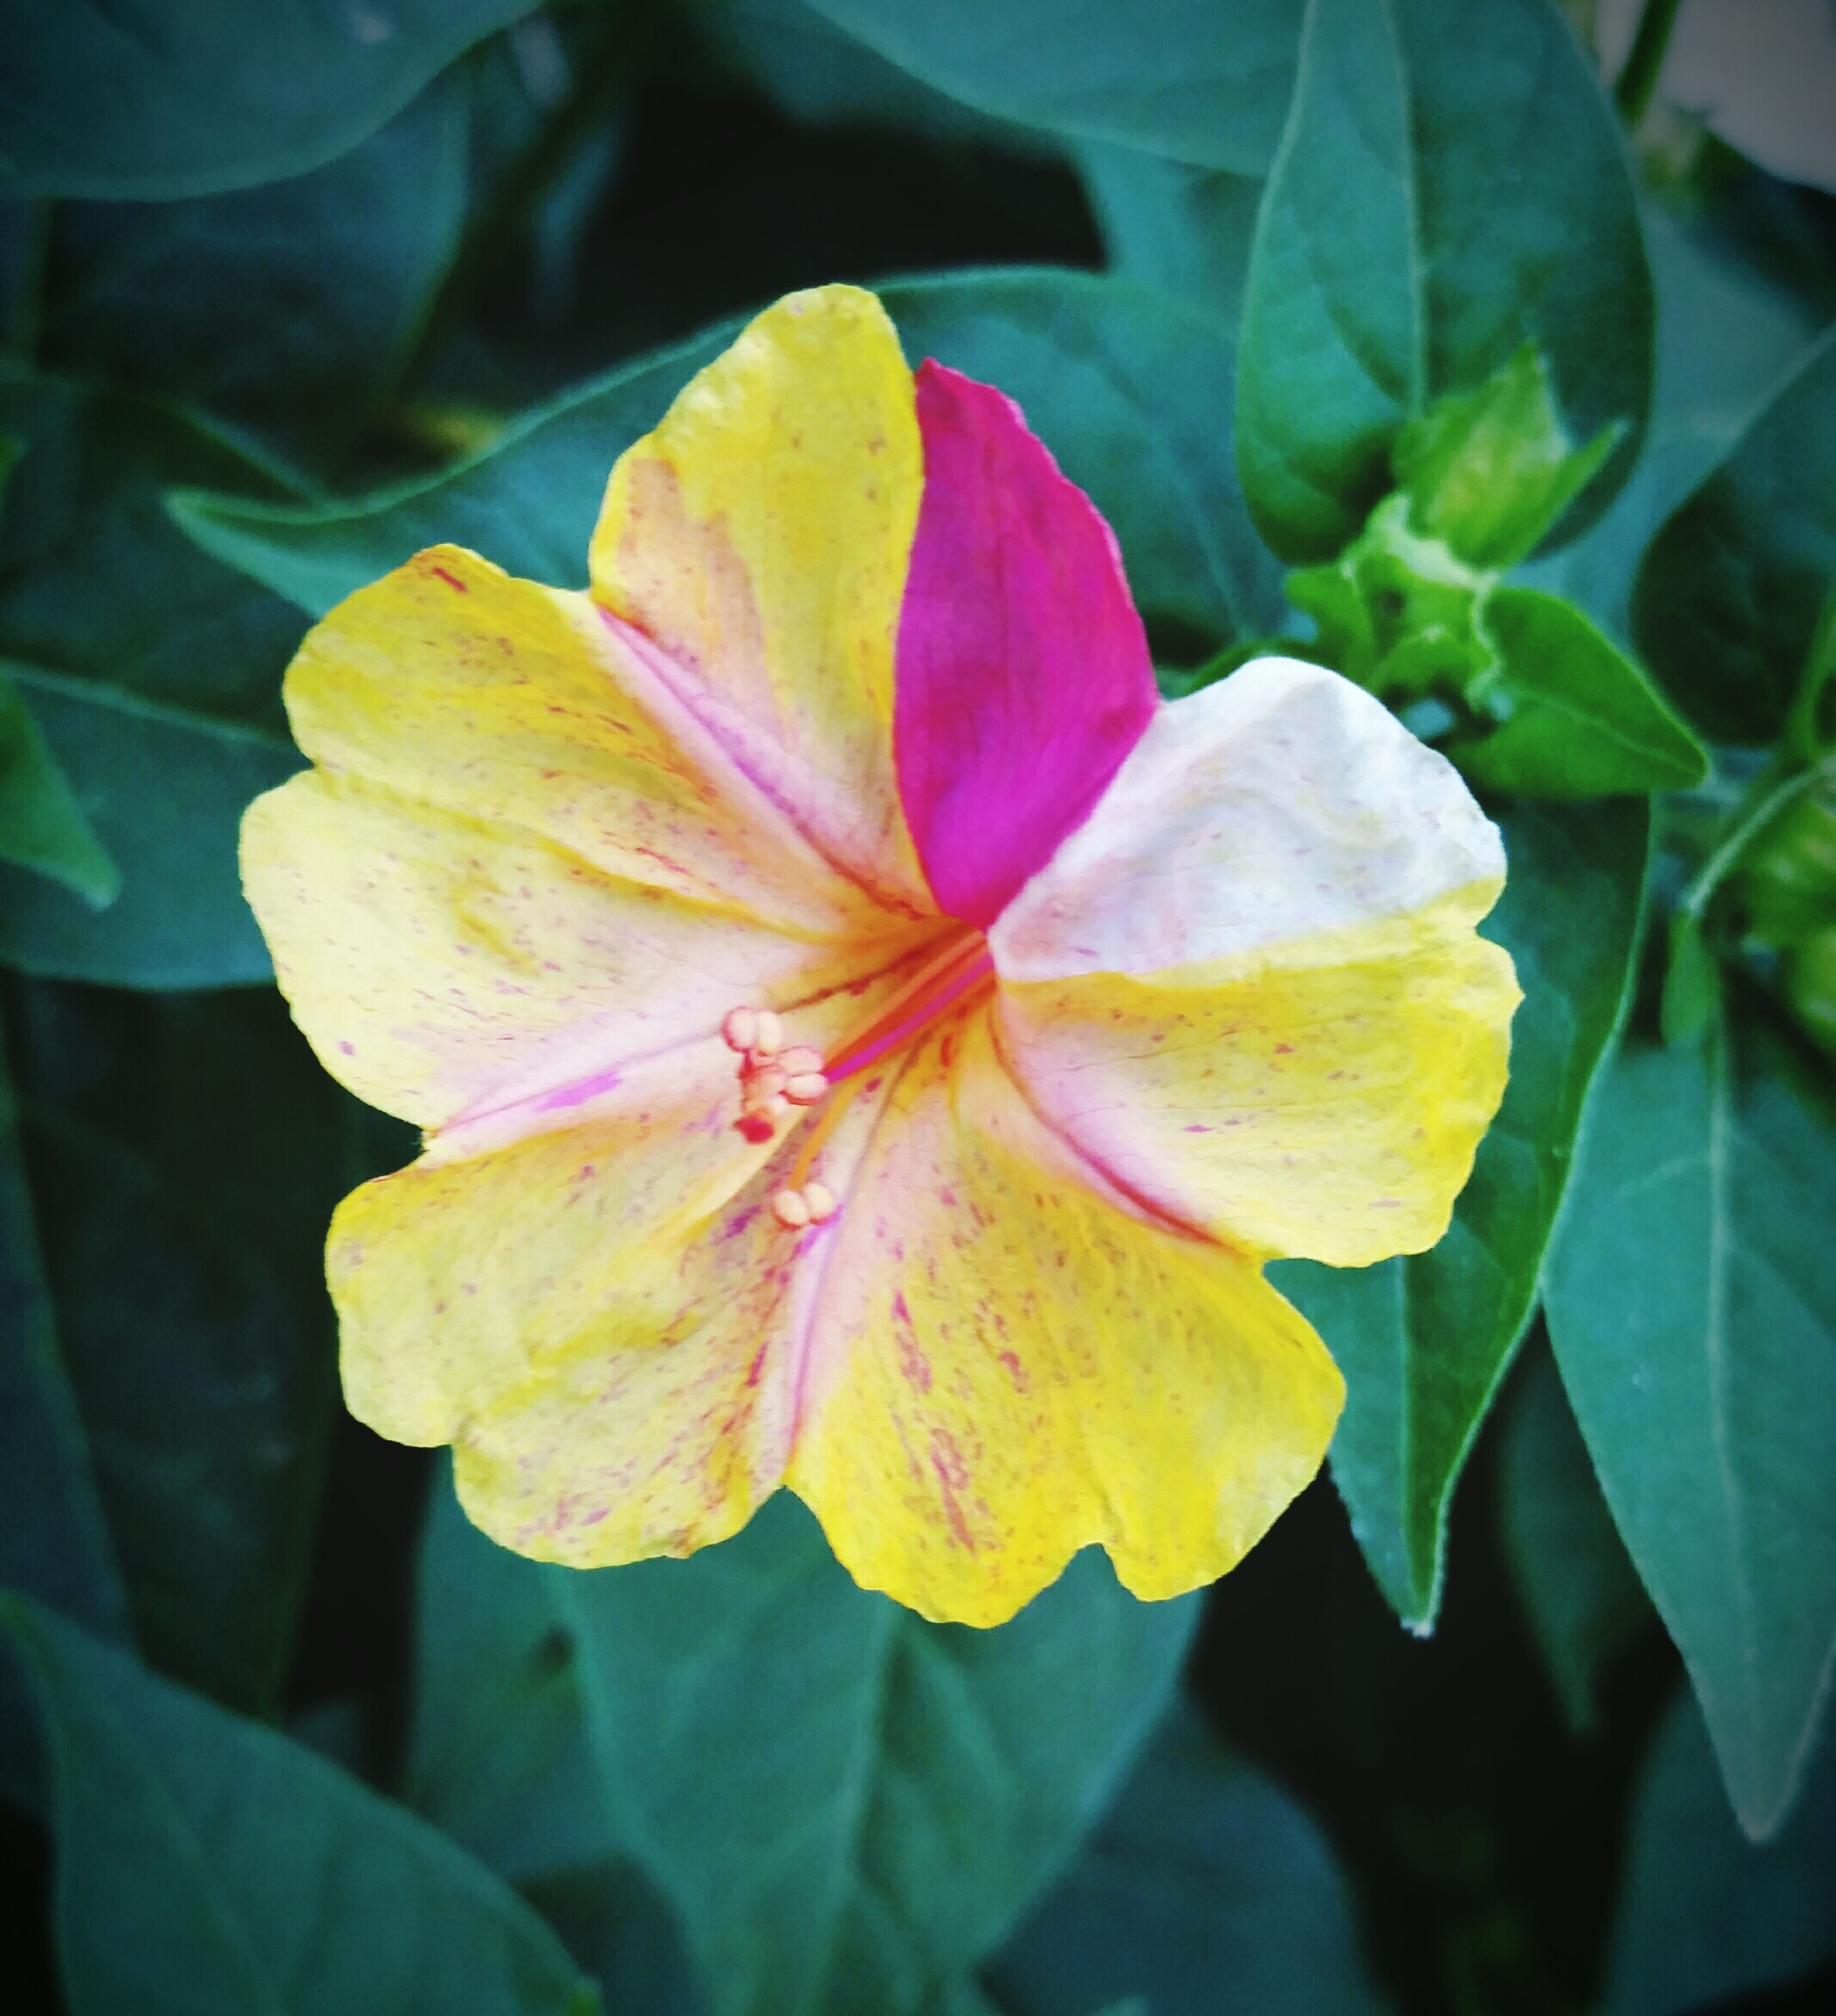 flower, petal, flower head, freshness, fragility, growth, beauty in nature, close-up, single flower, blooming, nature, stamen, focus on foreground, yellow, leaf, in bloom, plant, pollen, hibiscus, blossom